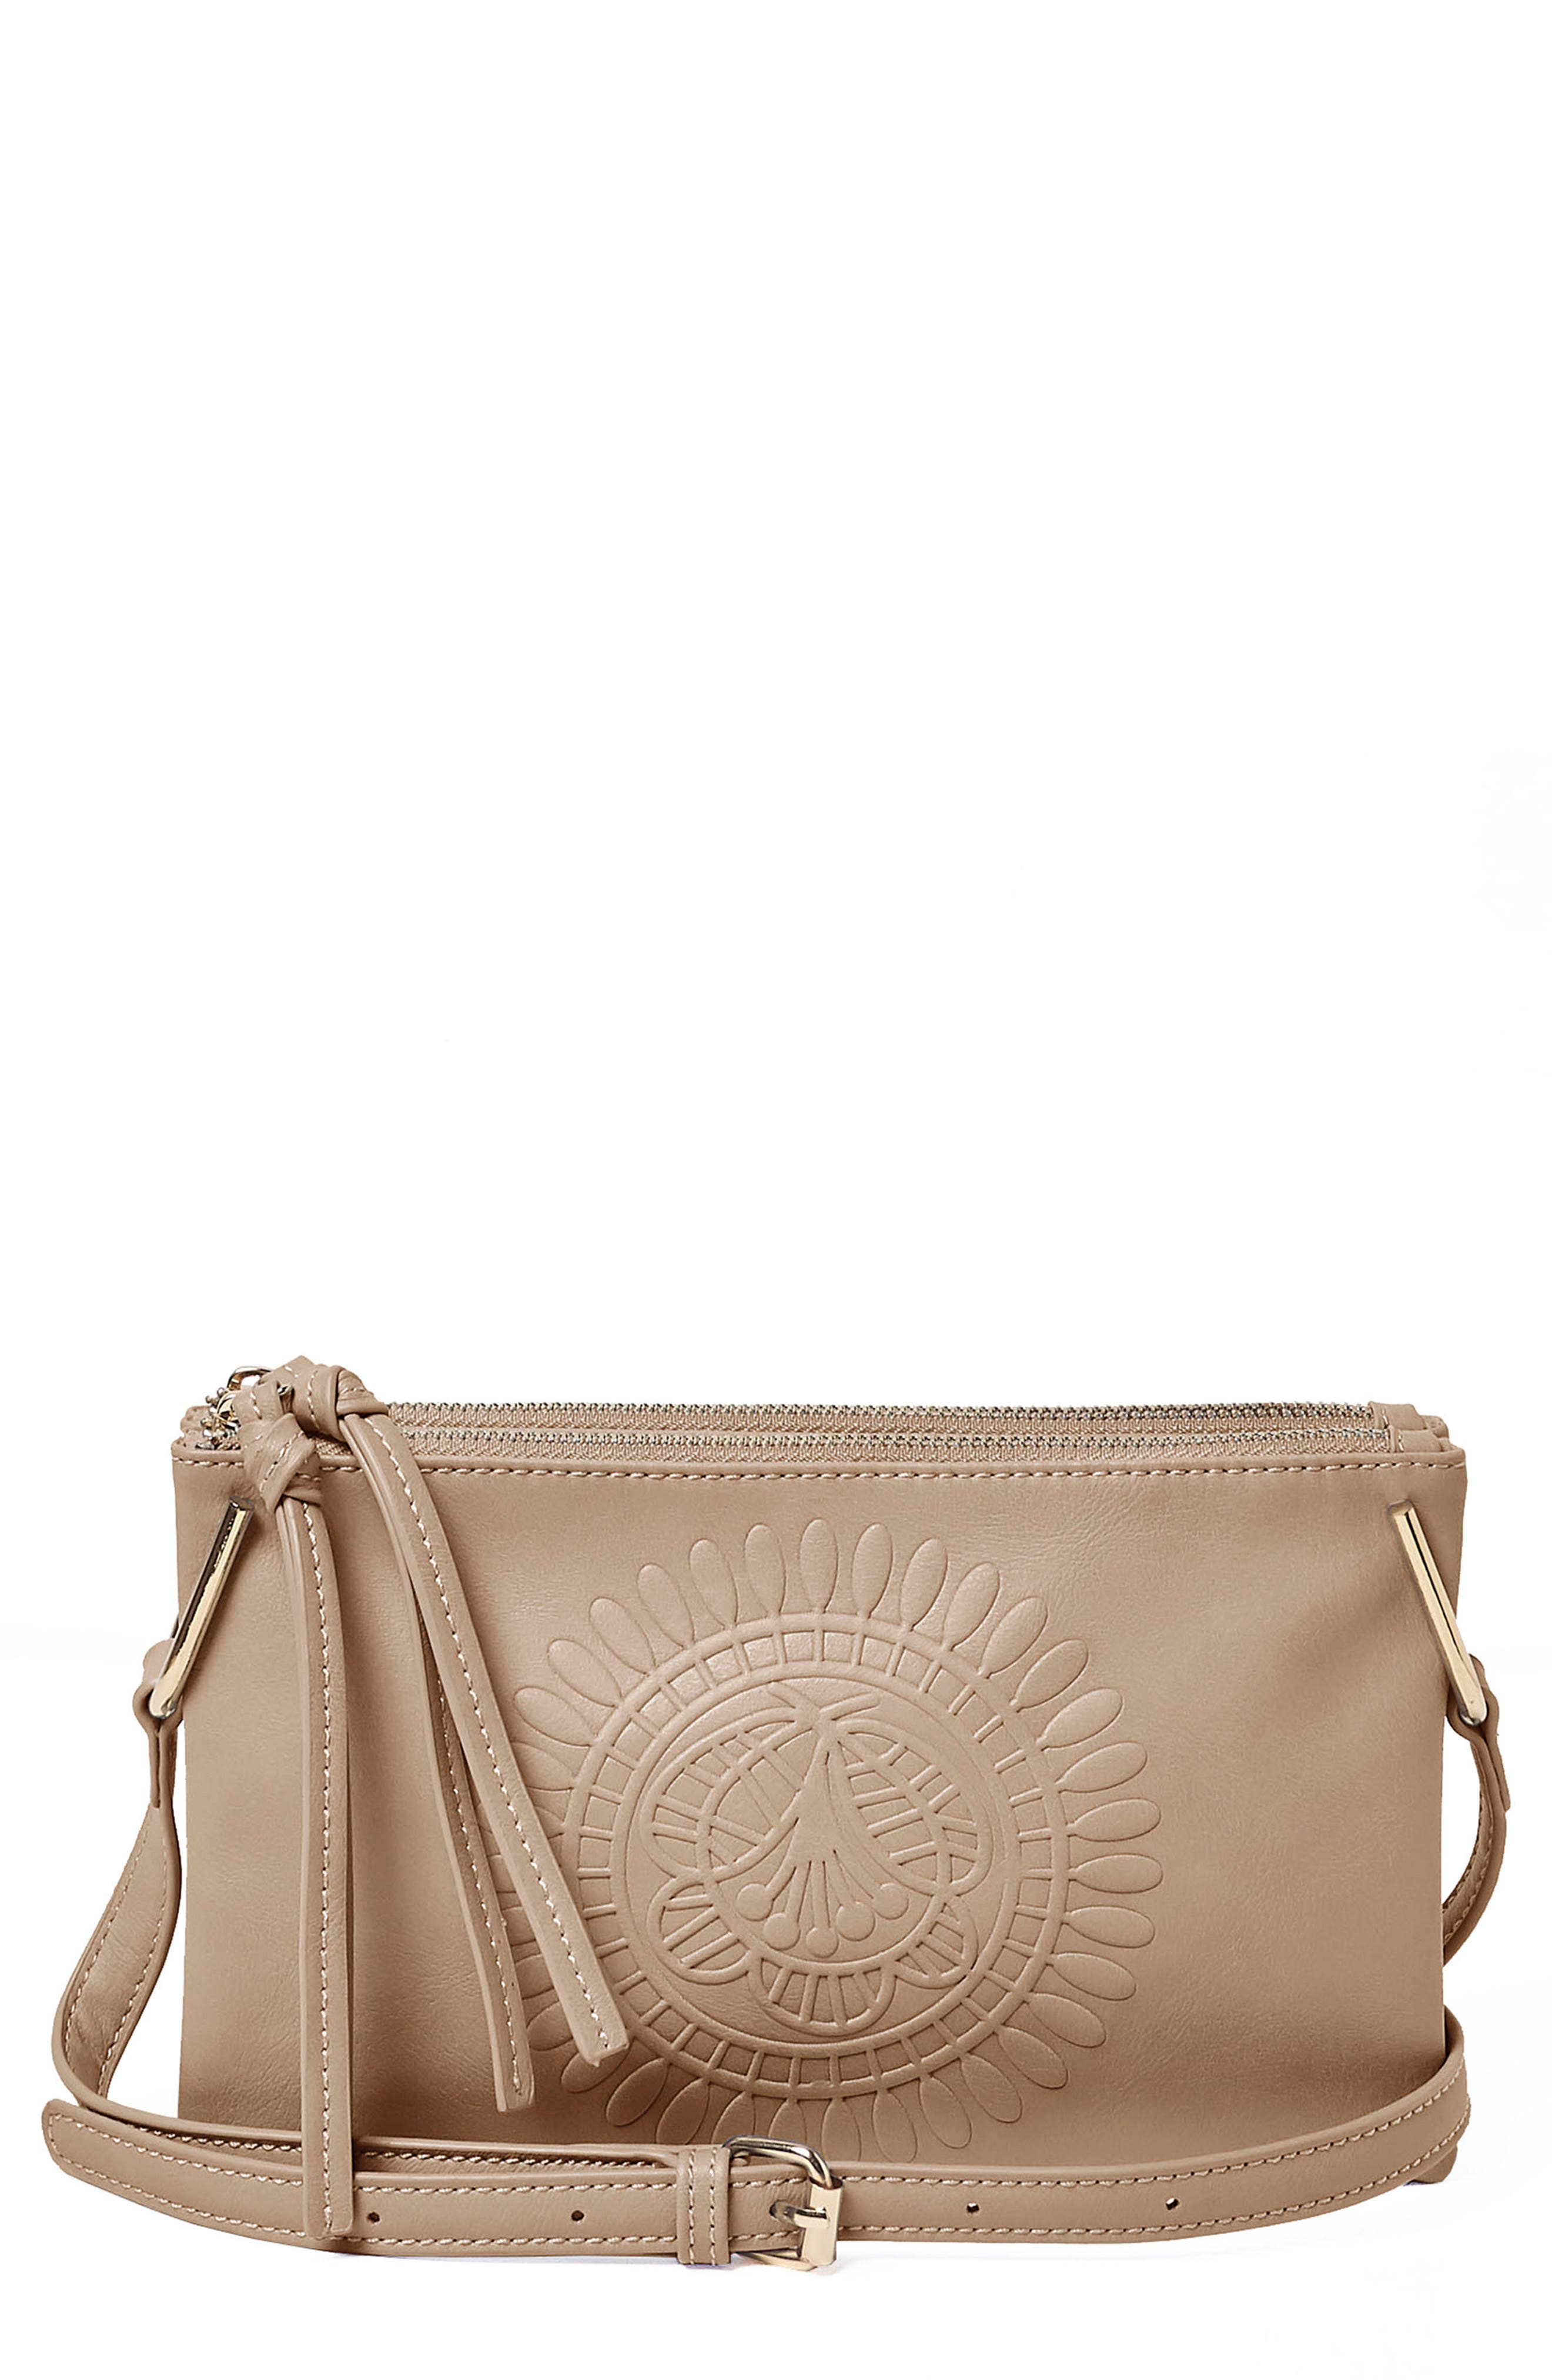 Flower Vegan Leather Crossbody Bag,                             Main thumbnail 1, color,                             Taupe